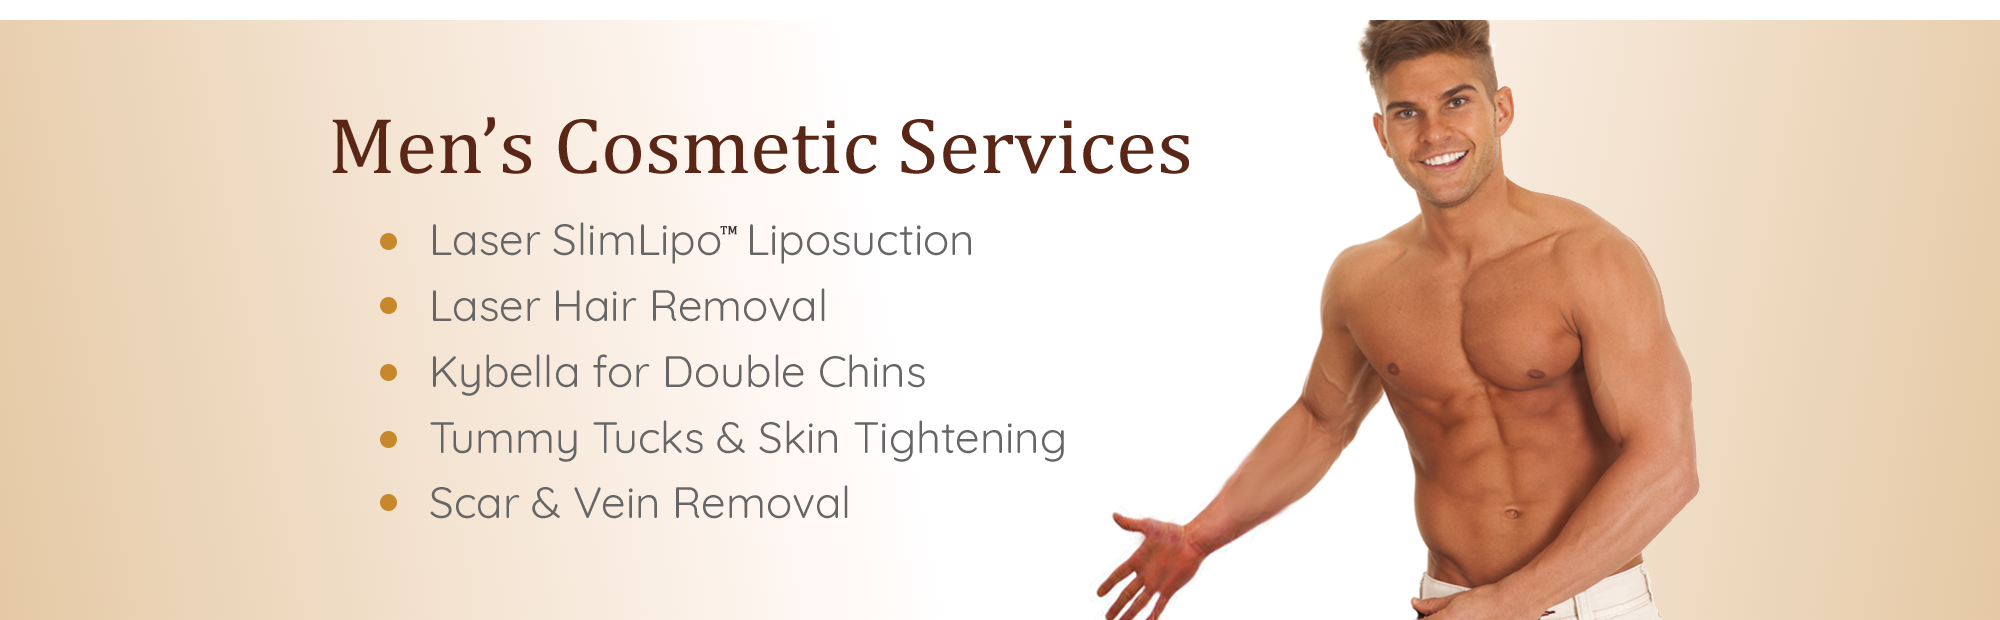 Men's Cosmetic Services, Plastic Surgery & Med Spa